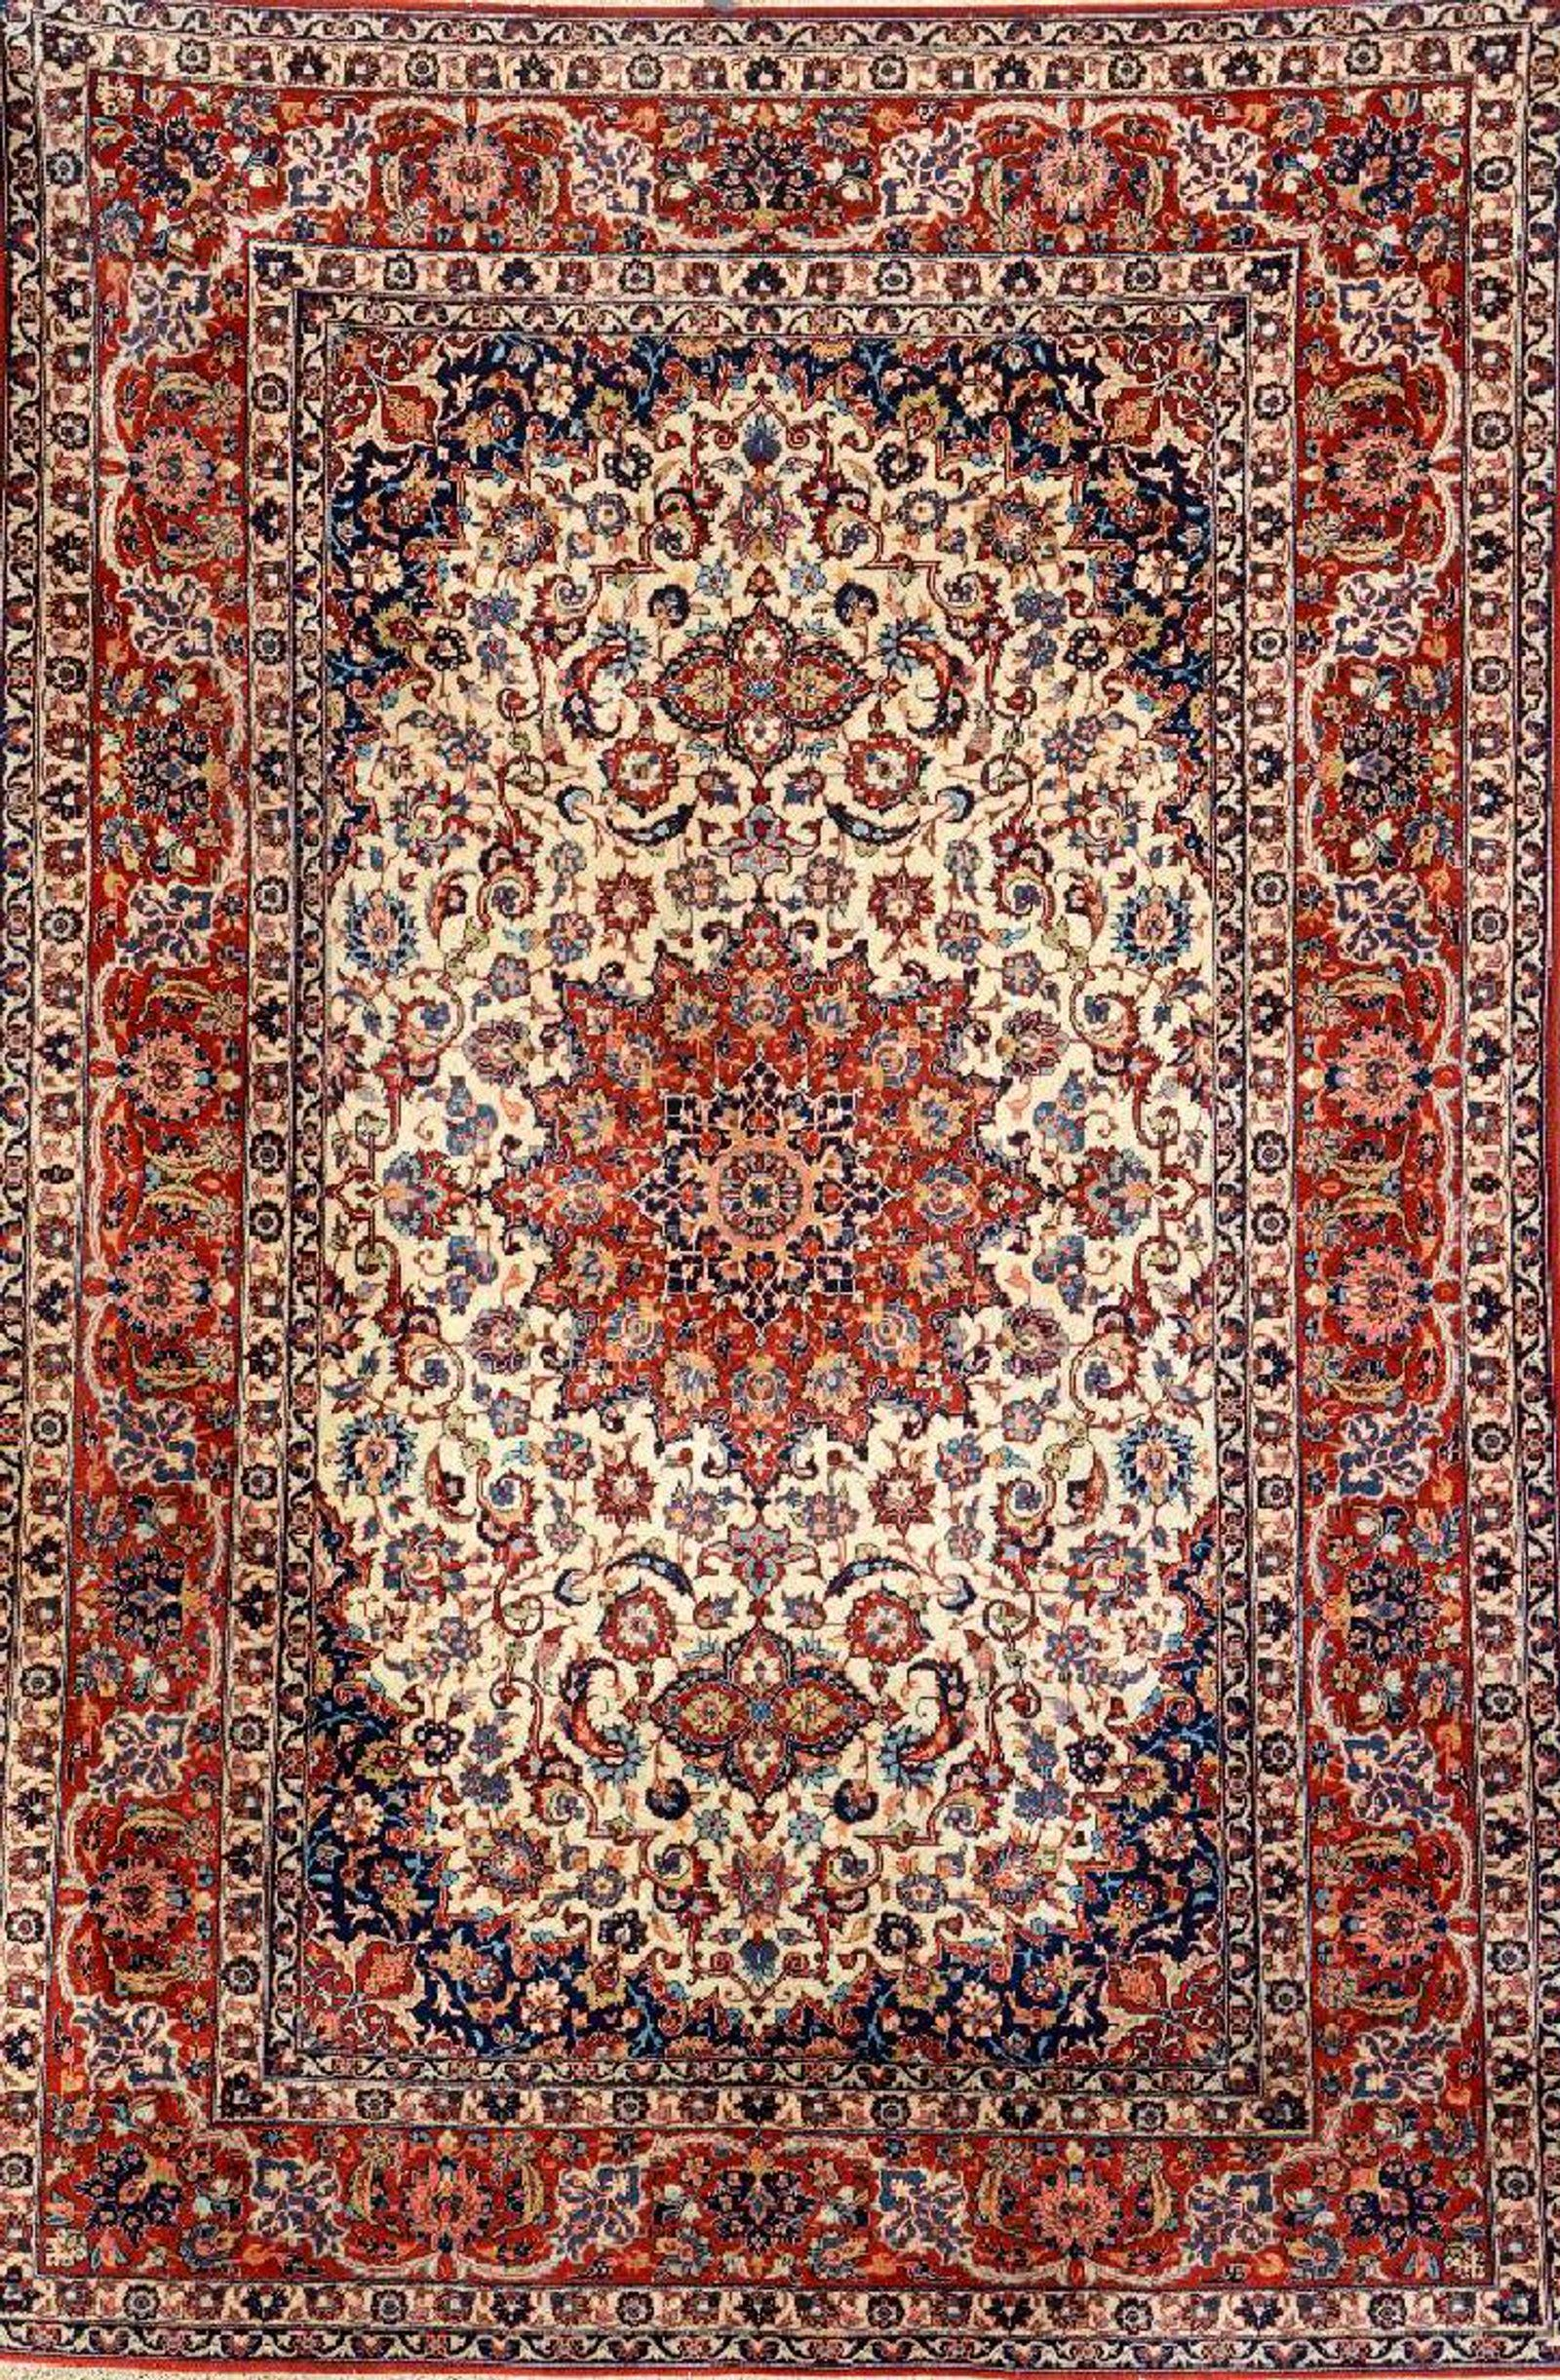 Isfahan Rug Persia Circa 1940 Wool Cotton Approx 217 X 147 Cm Rugs Persian Rug Antique Carpets